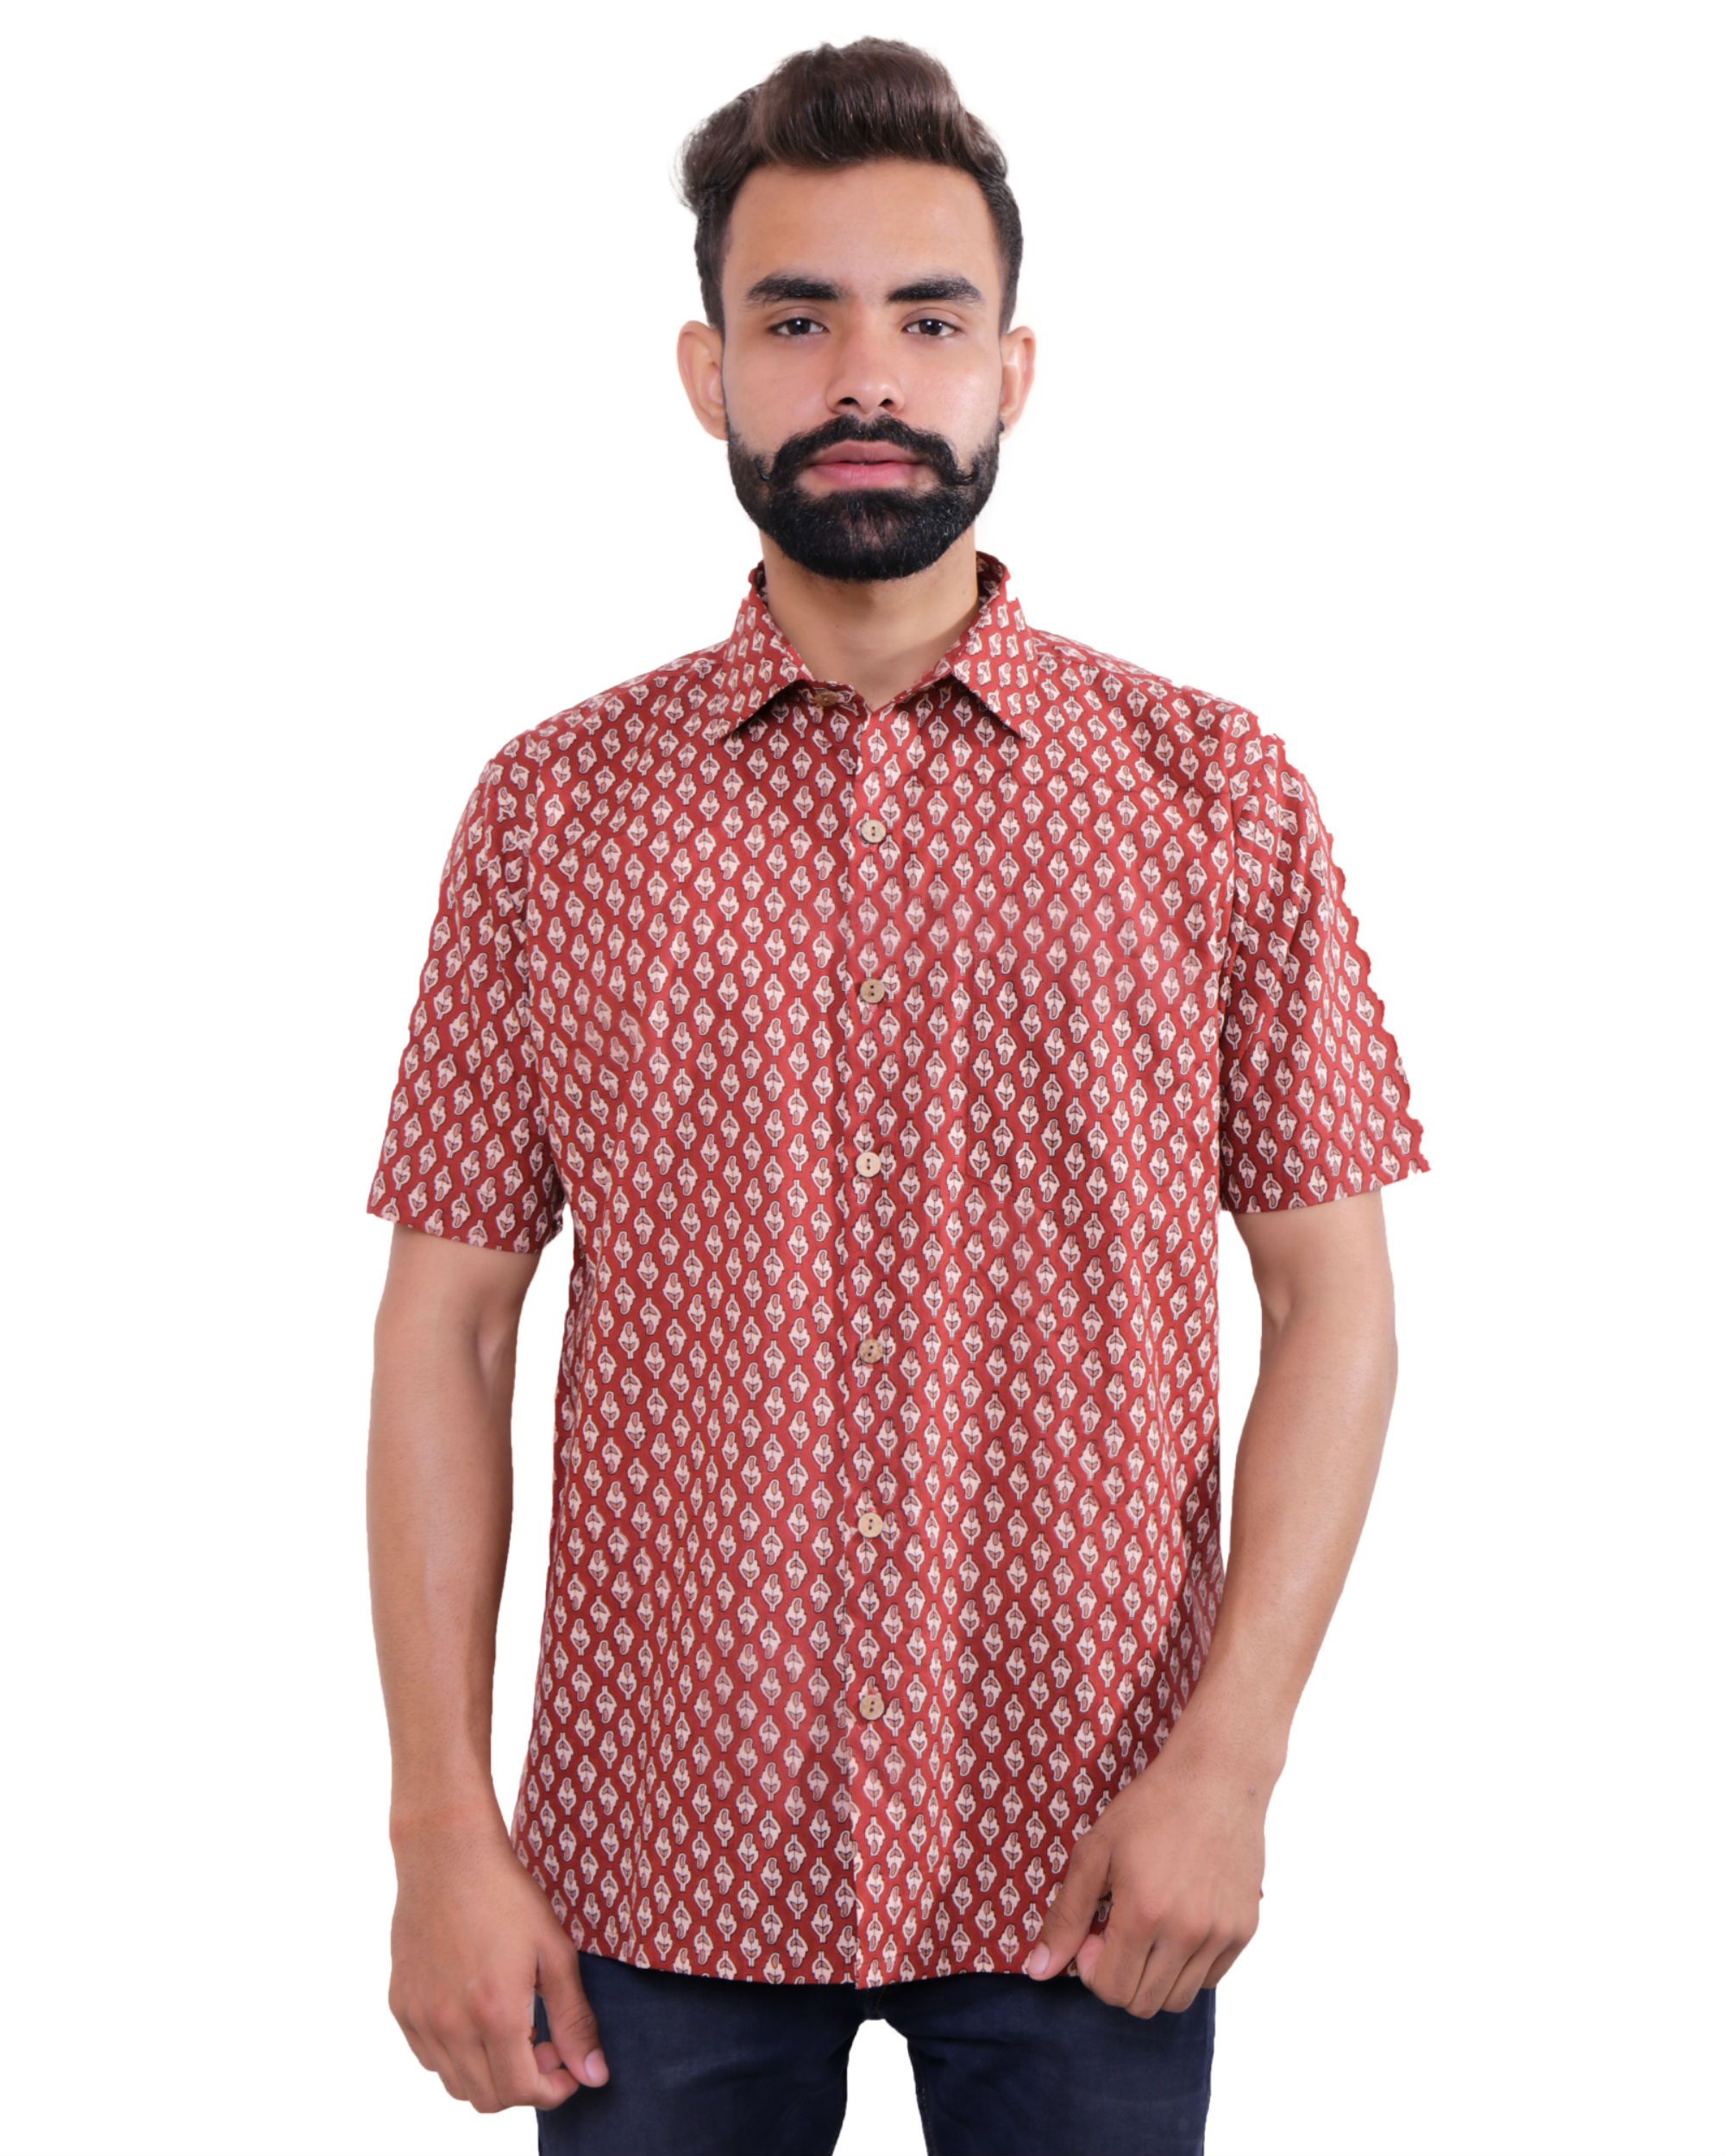 Maroon all-over print shirt